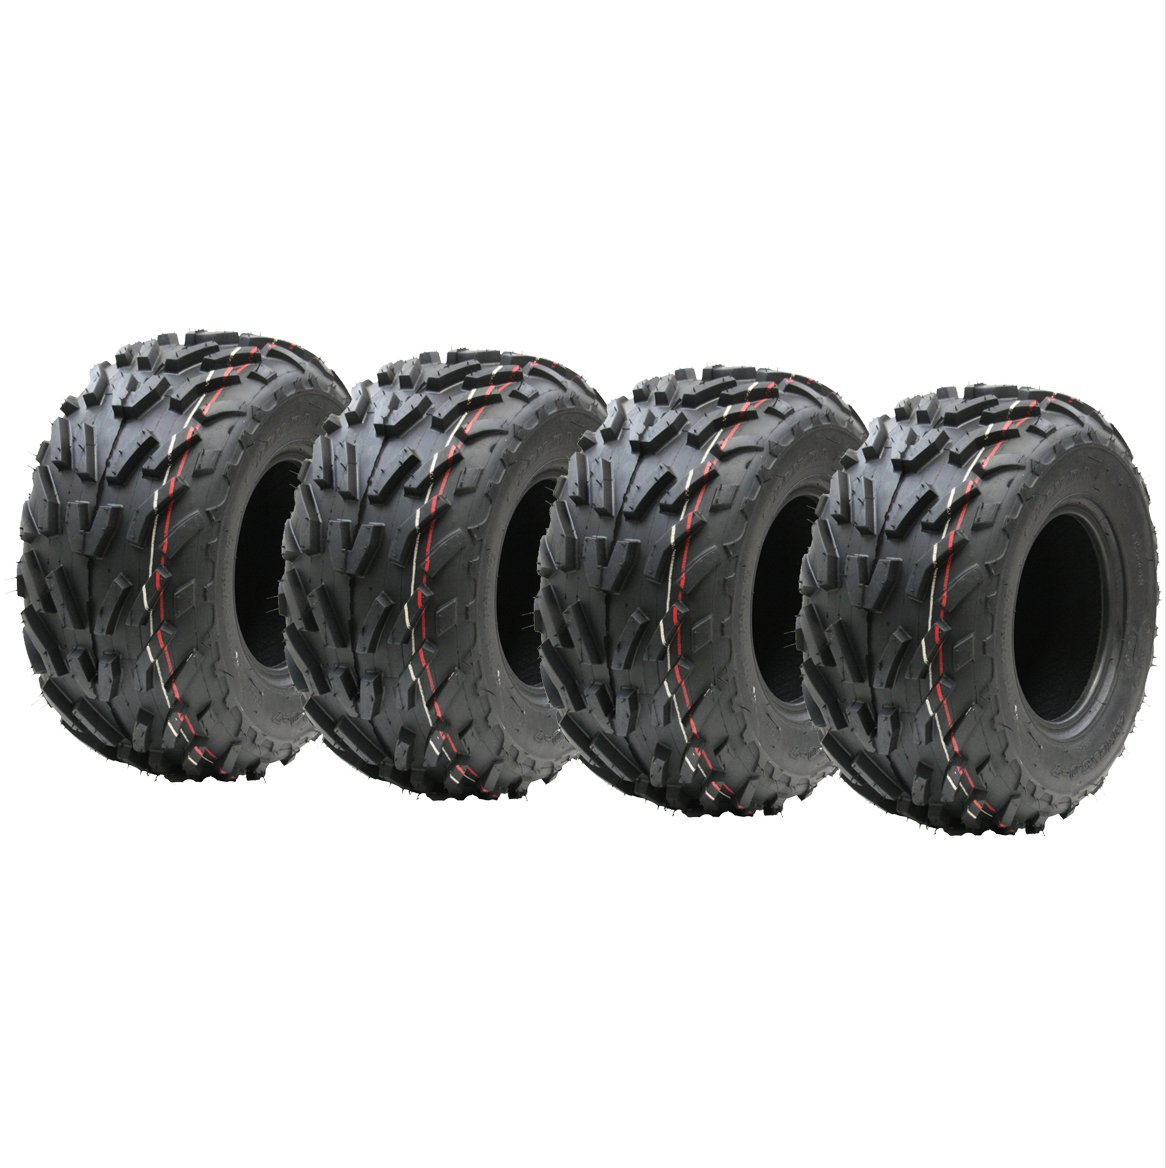 Four 16x8.00-7 quad tyres, 16 x 8-7 ATV E marked road legal tyre 7 inch Wanda